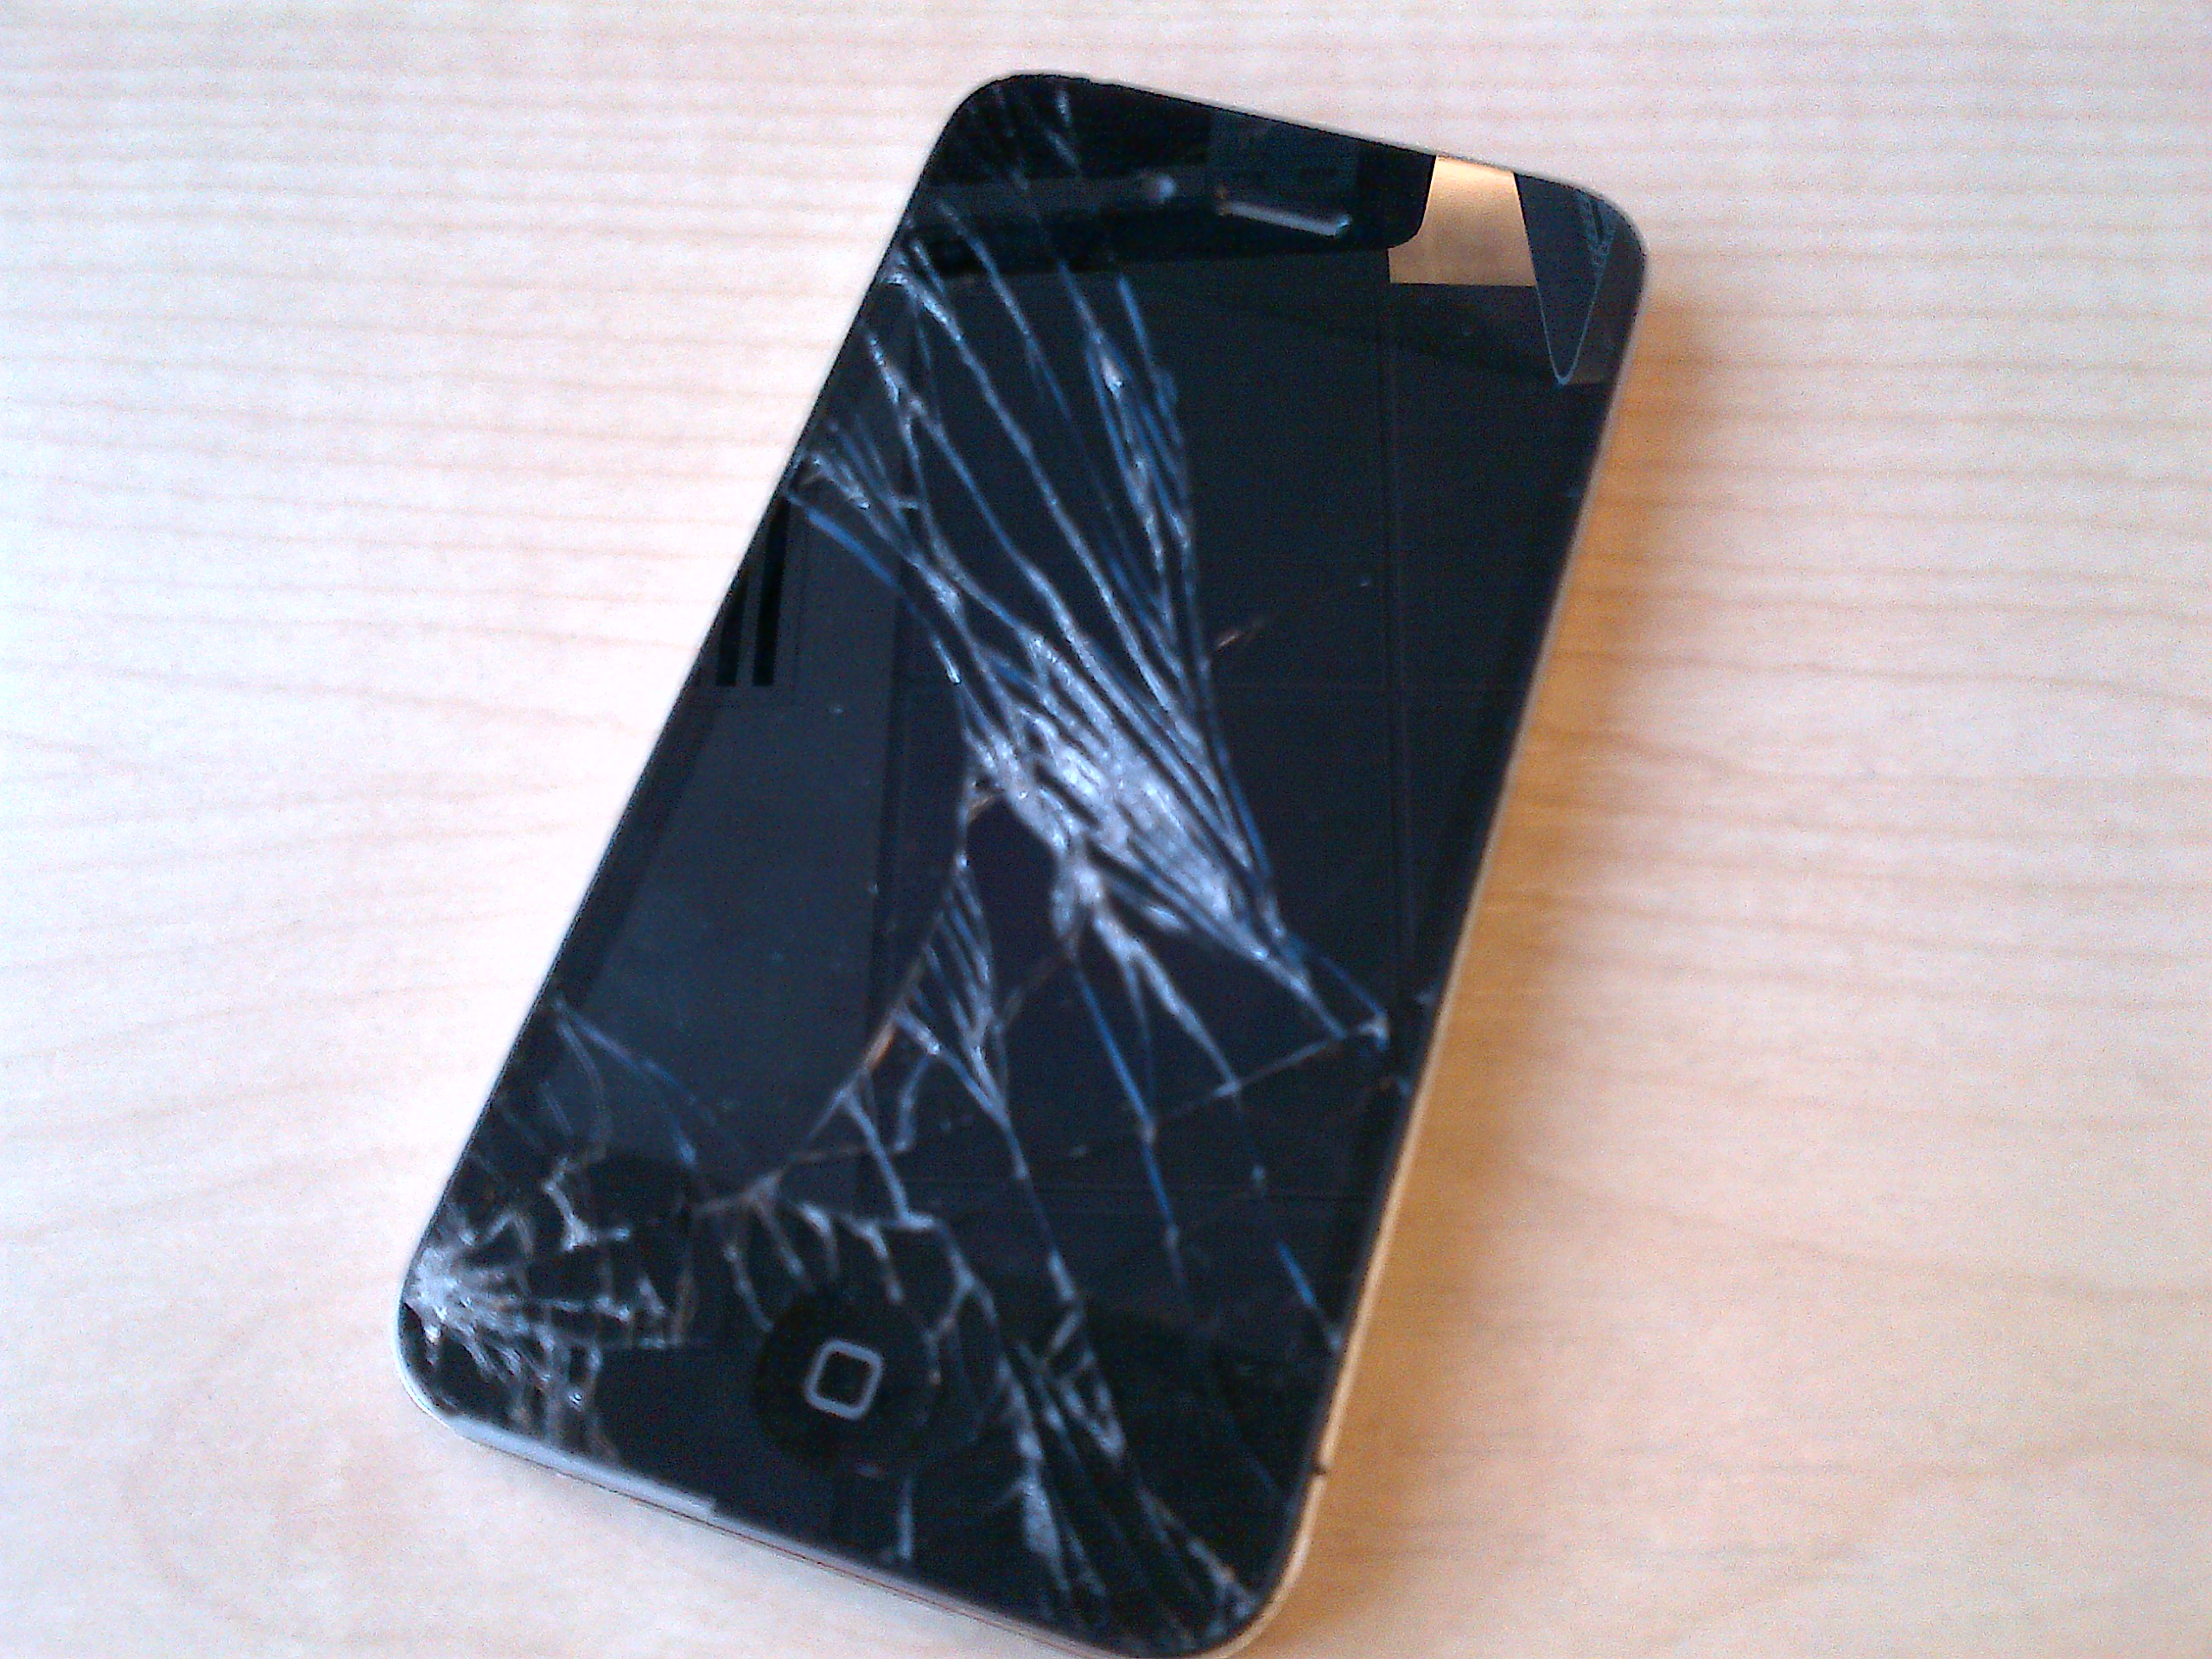 iPhone Busted Screen - If your phone looks like this, we can fix it,